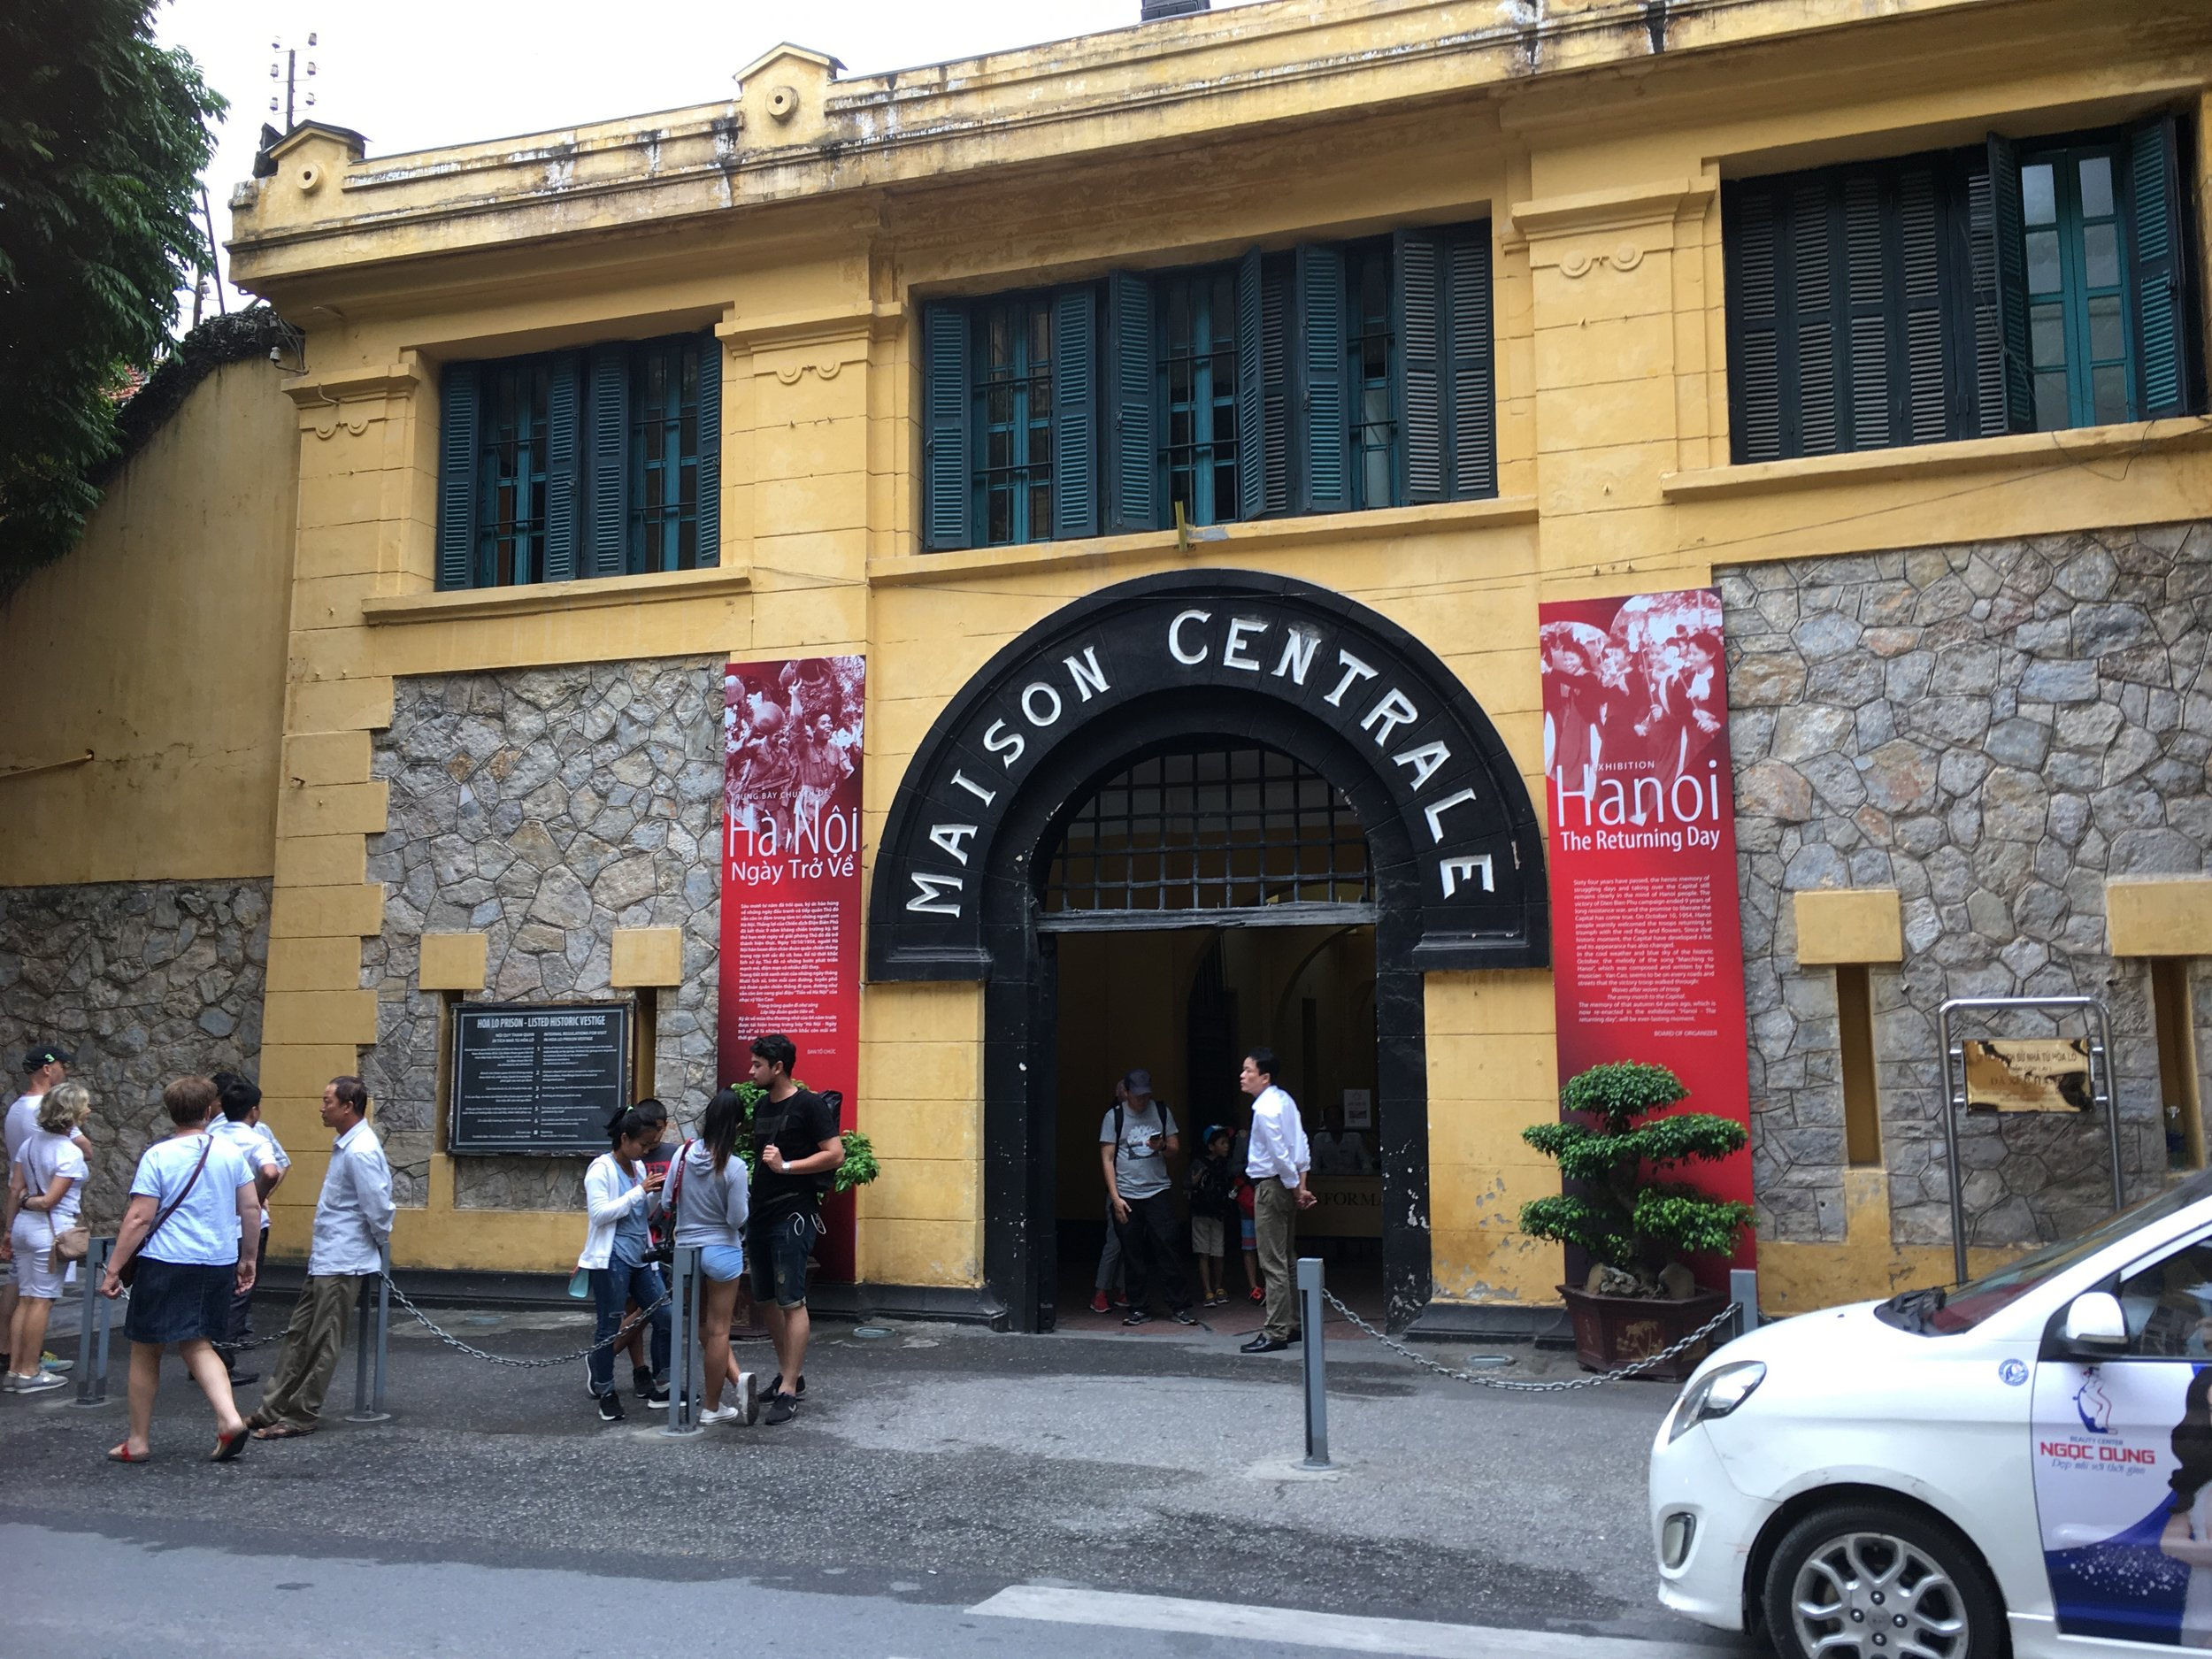 The Hanoi Hilton. A place with significant stories to tell